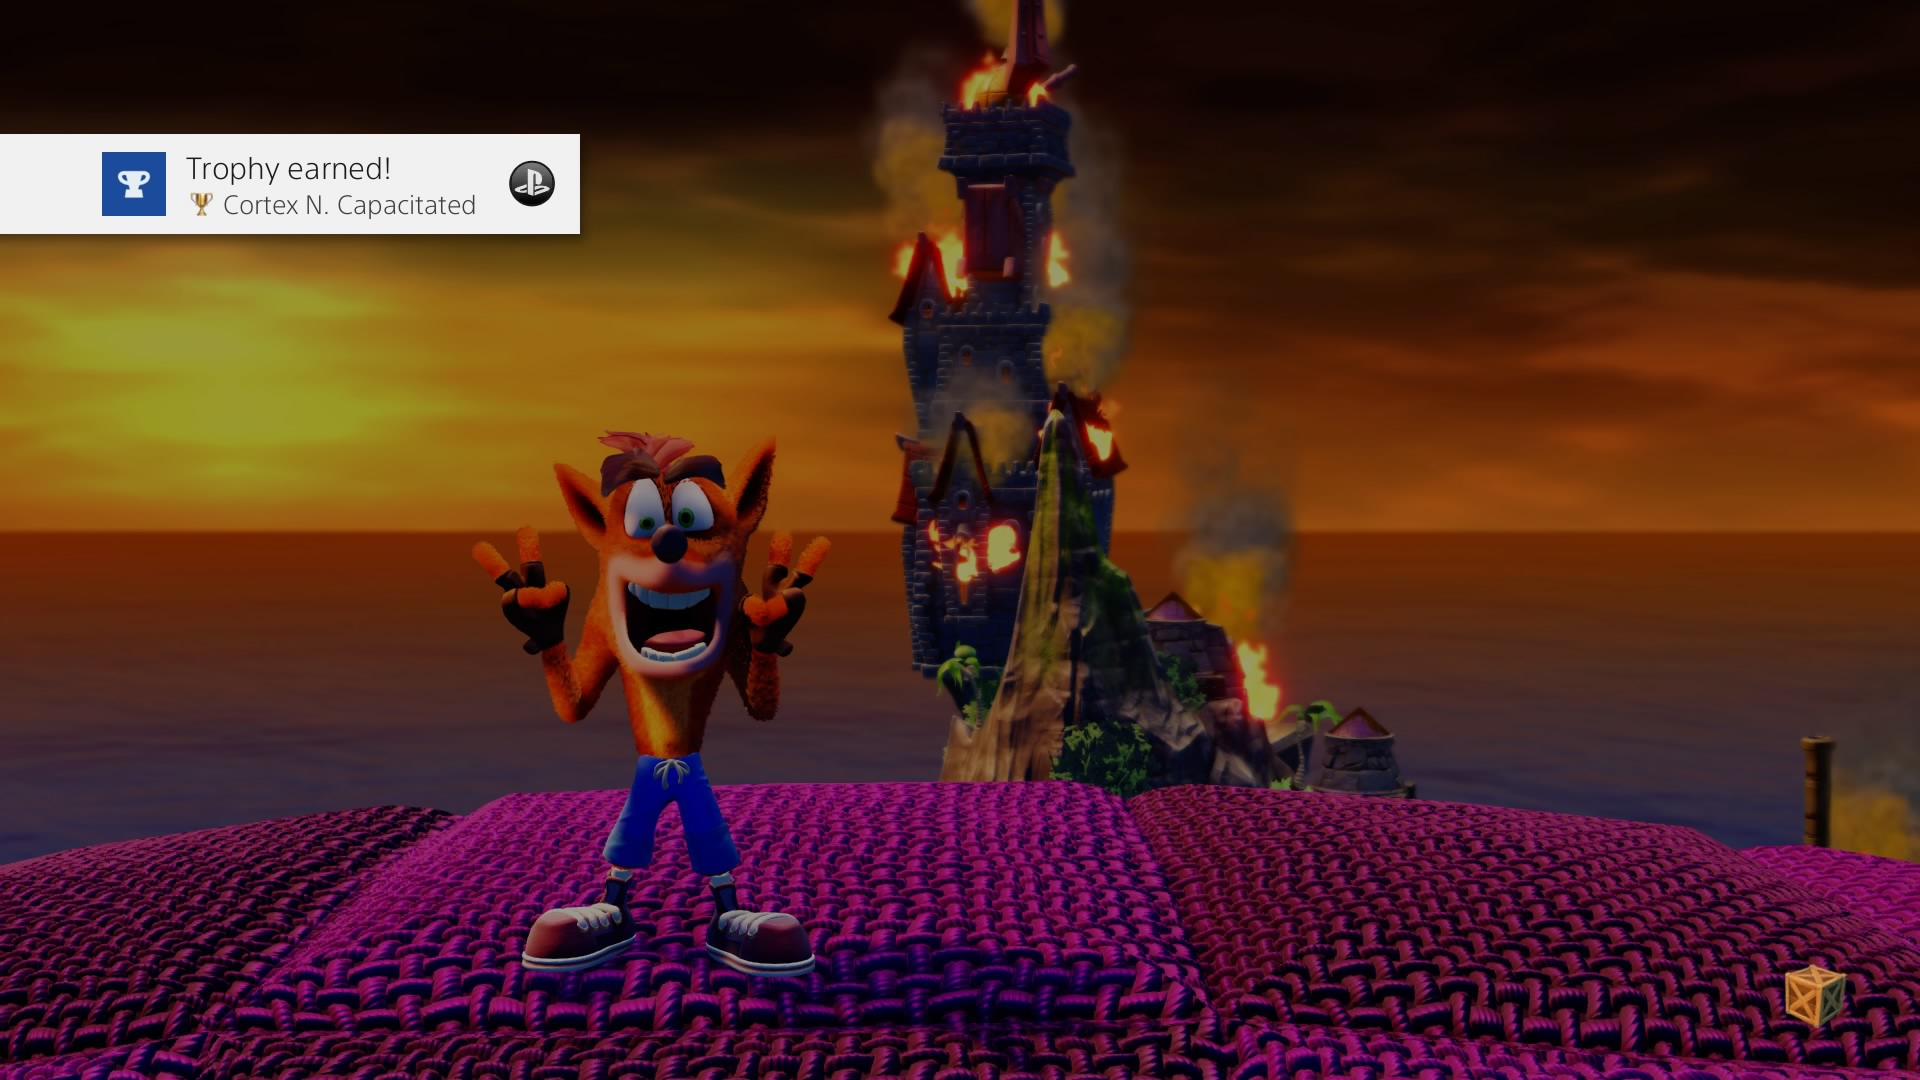 Crash Bandicoot Cortex N. Capacitated (Gold)